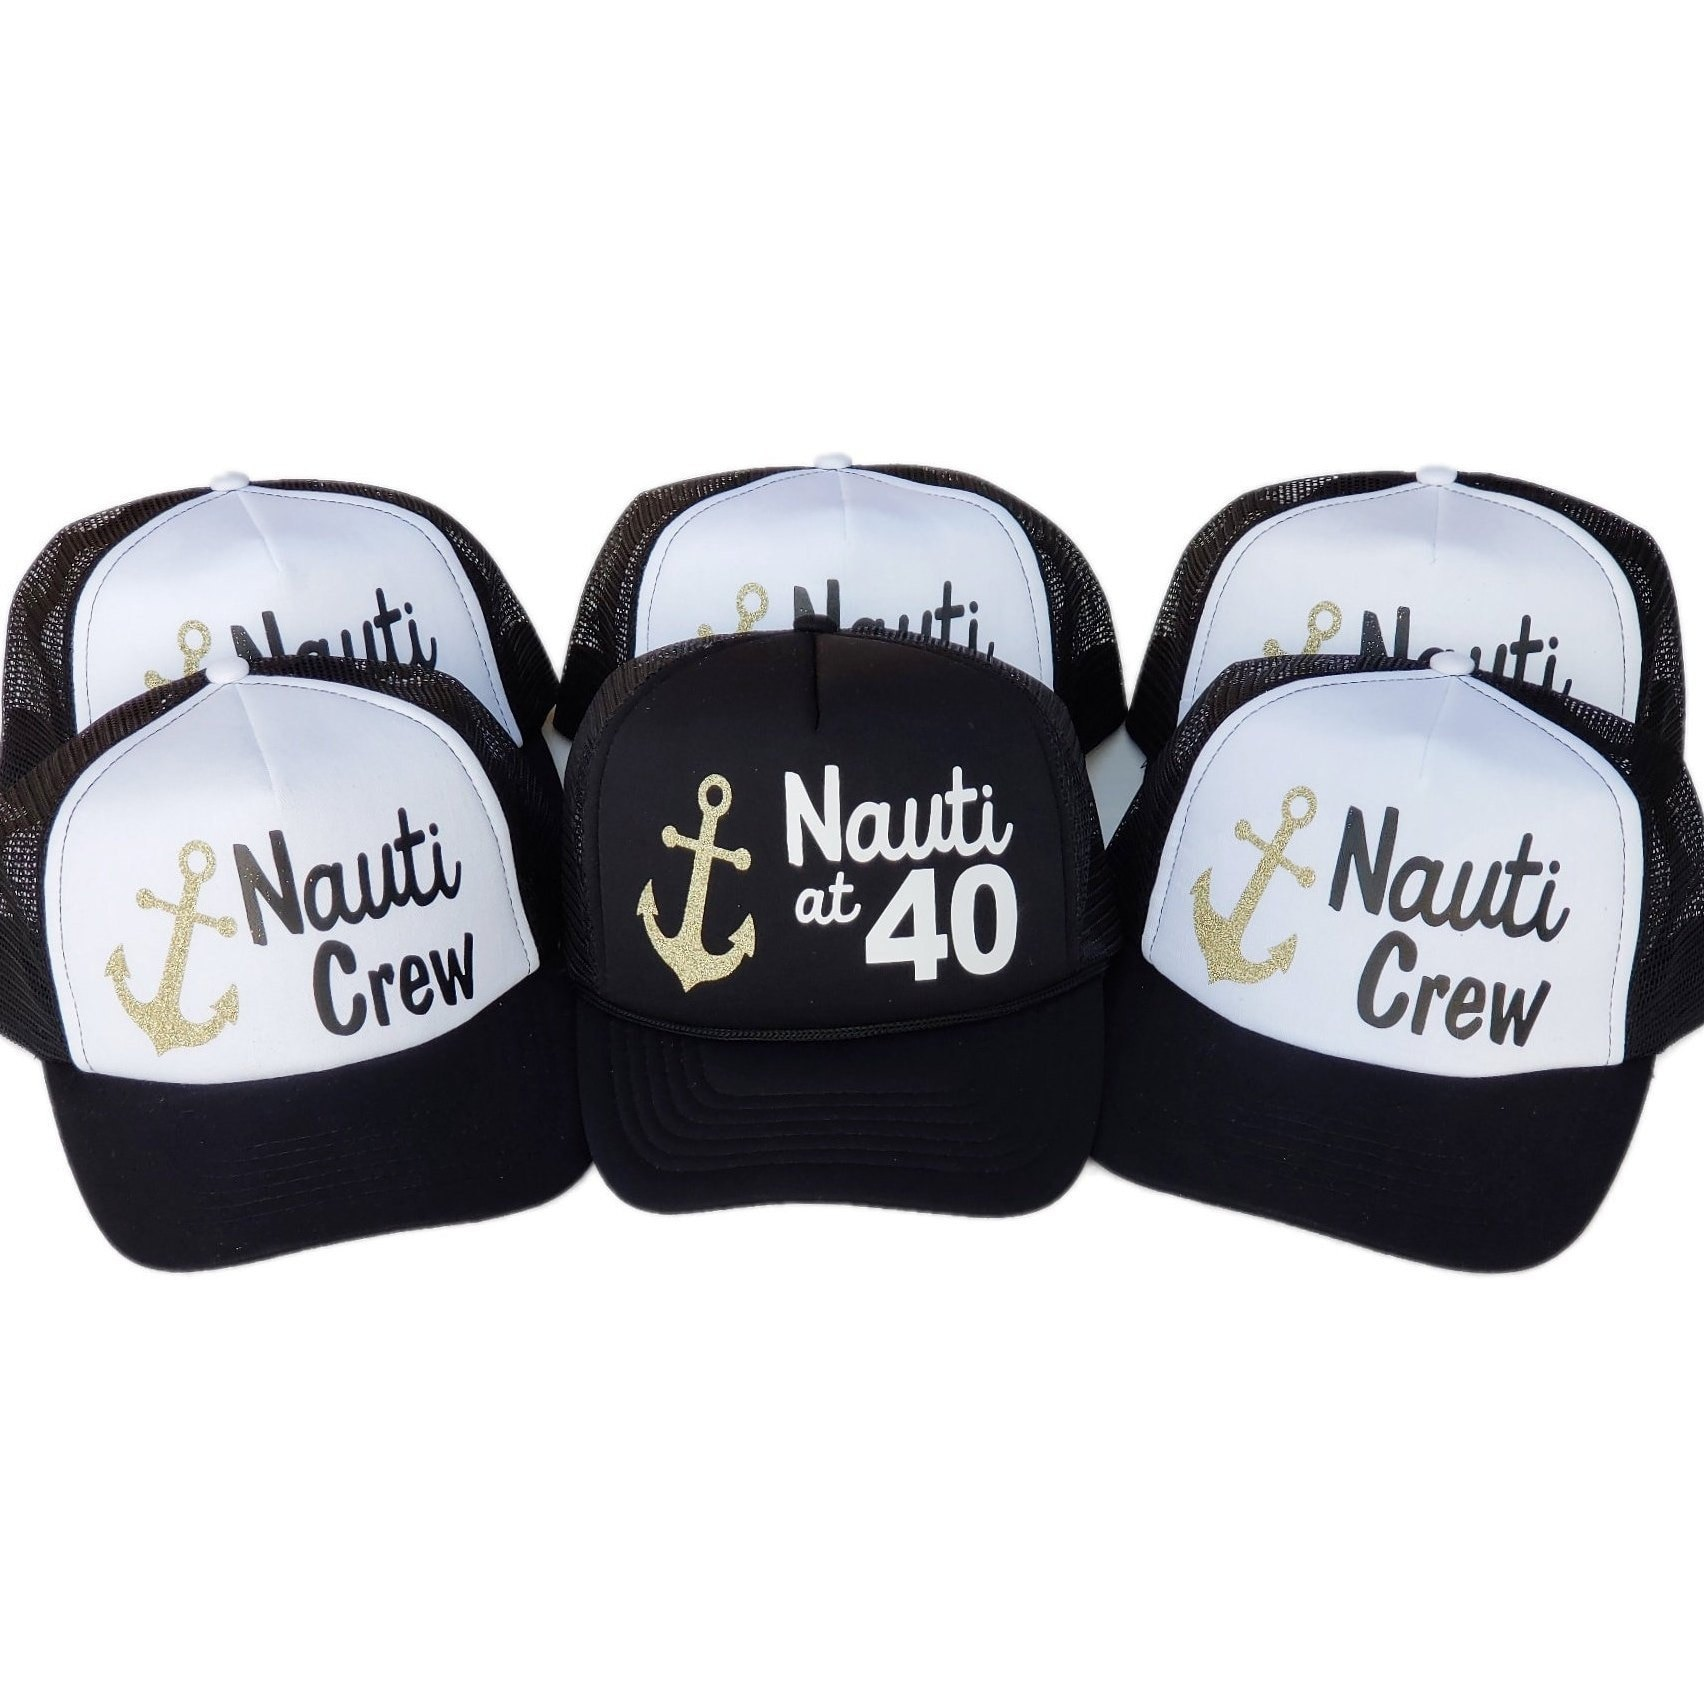 Nauti at 40 Trucker Hats Nauti Hat 40 birthday trucker hats  8ae41c8d3b1